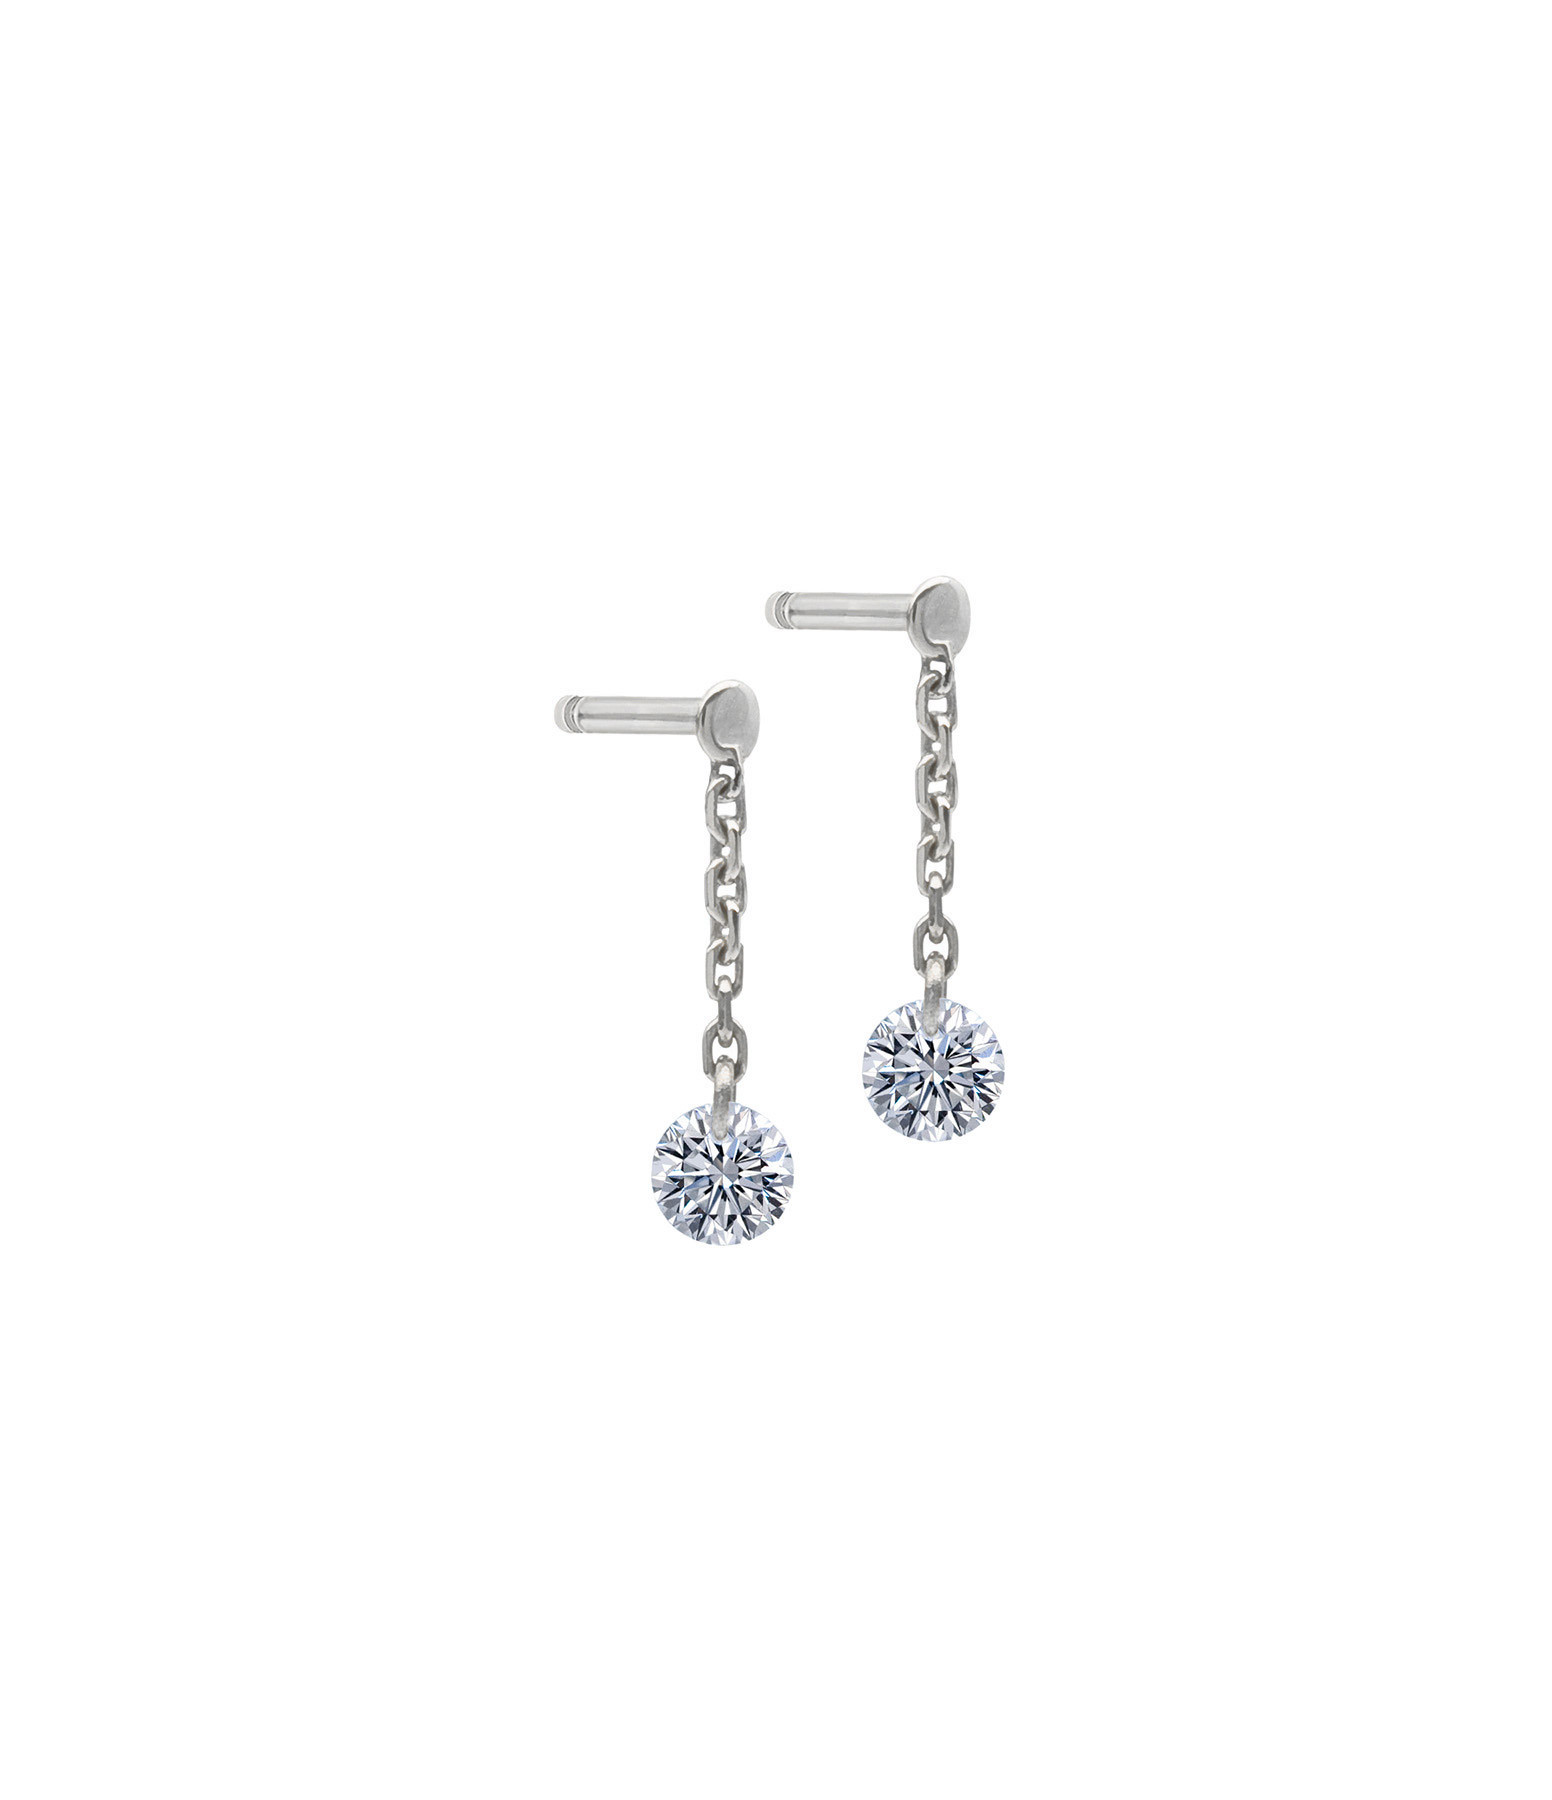 LA BRUNE & LA BLONDE - Boucles d'oreilles 360° Diamant Brillant Or Blanc